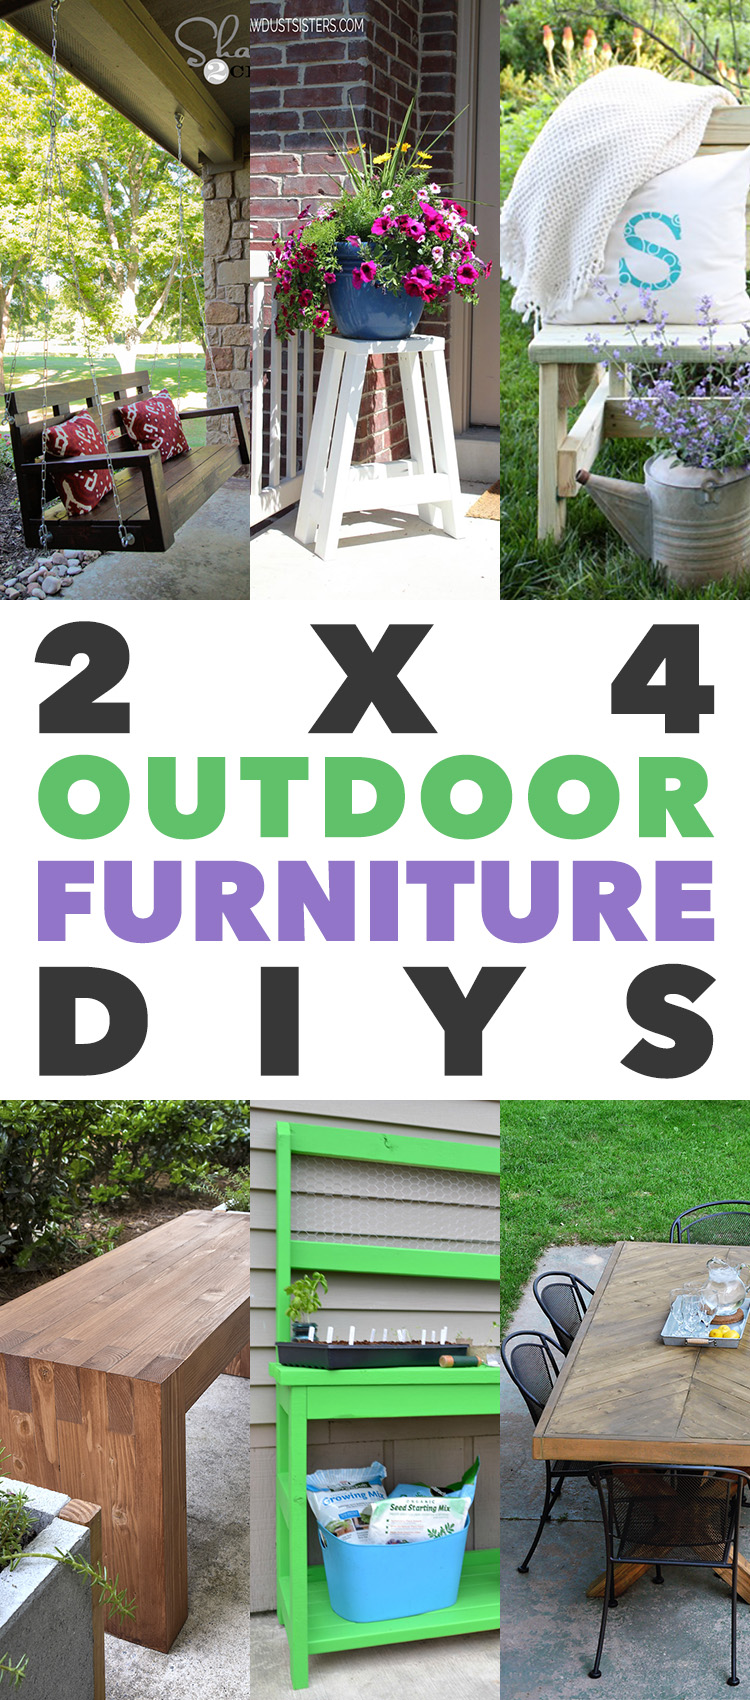 Fabulous Outdoor Furniture You Can Build With 2X4s - The ...